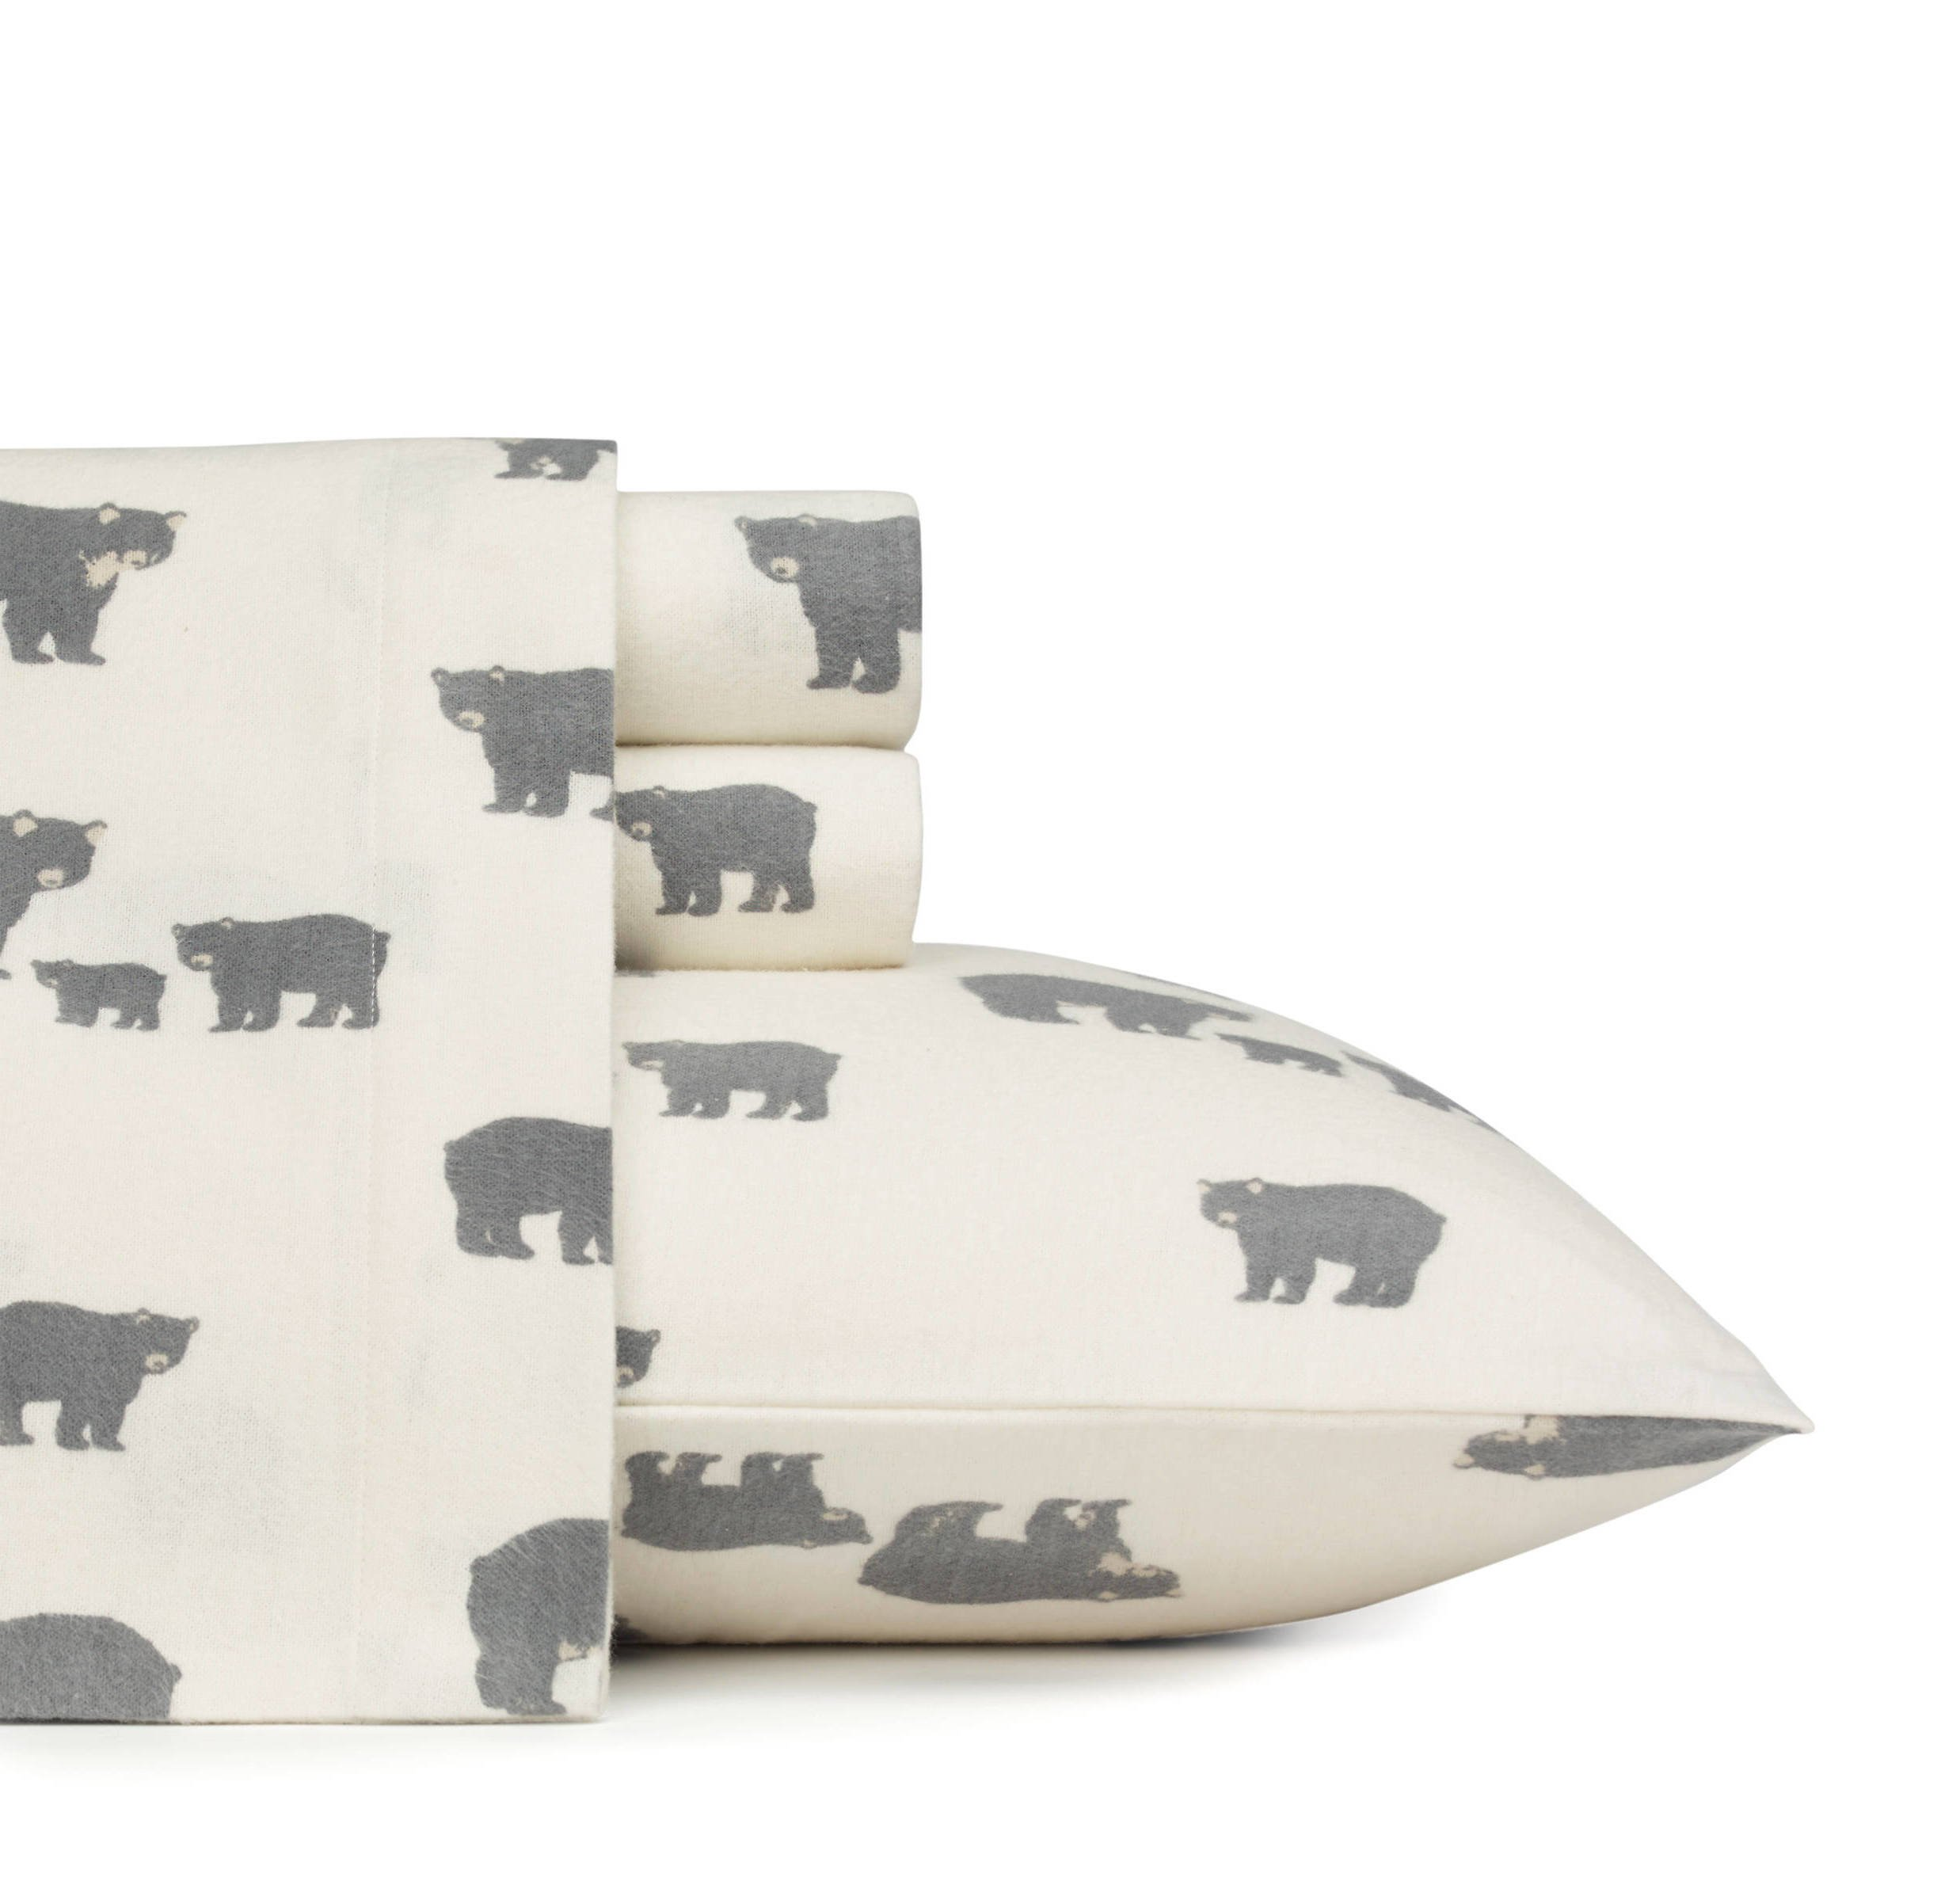 D&A 4 Piece Ivory Cozy Black Wild Bears Theme Sheets King Set, Beautiful Animal Lodge Cottage, Southwestern Print, Fully Elasticized Fitted, Deep Pocket, Cotton Flannel